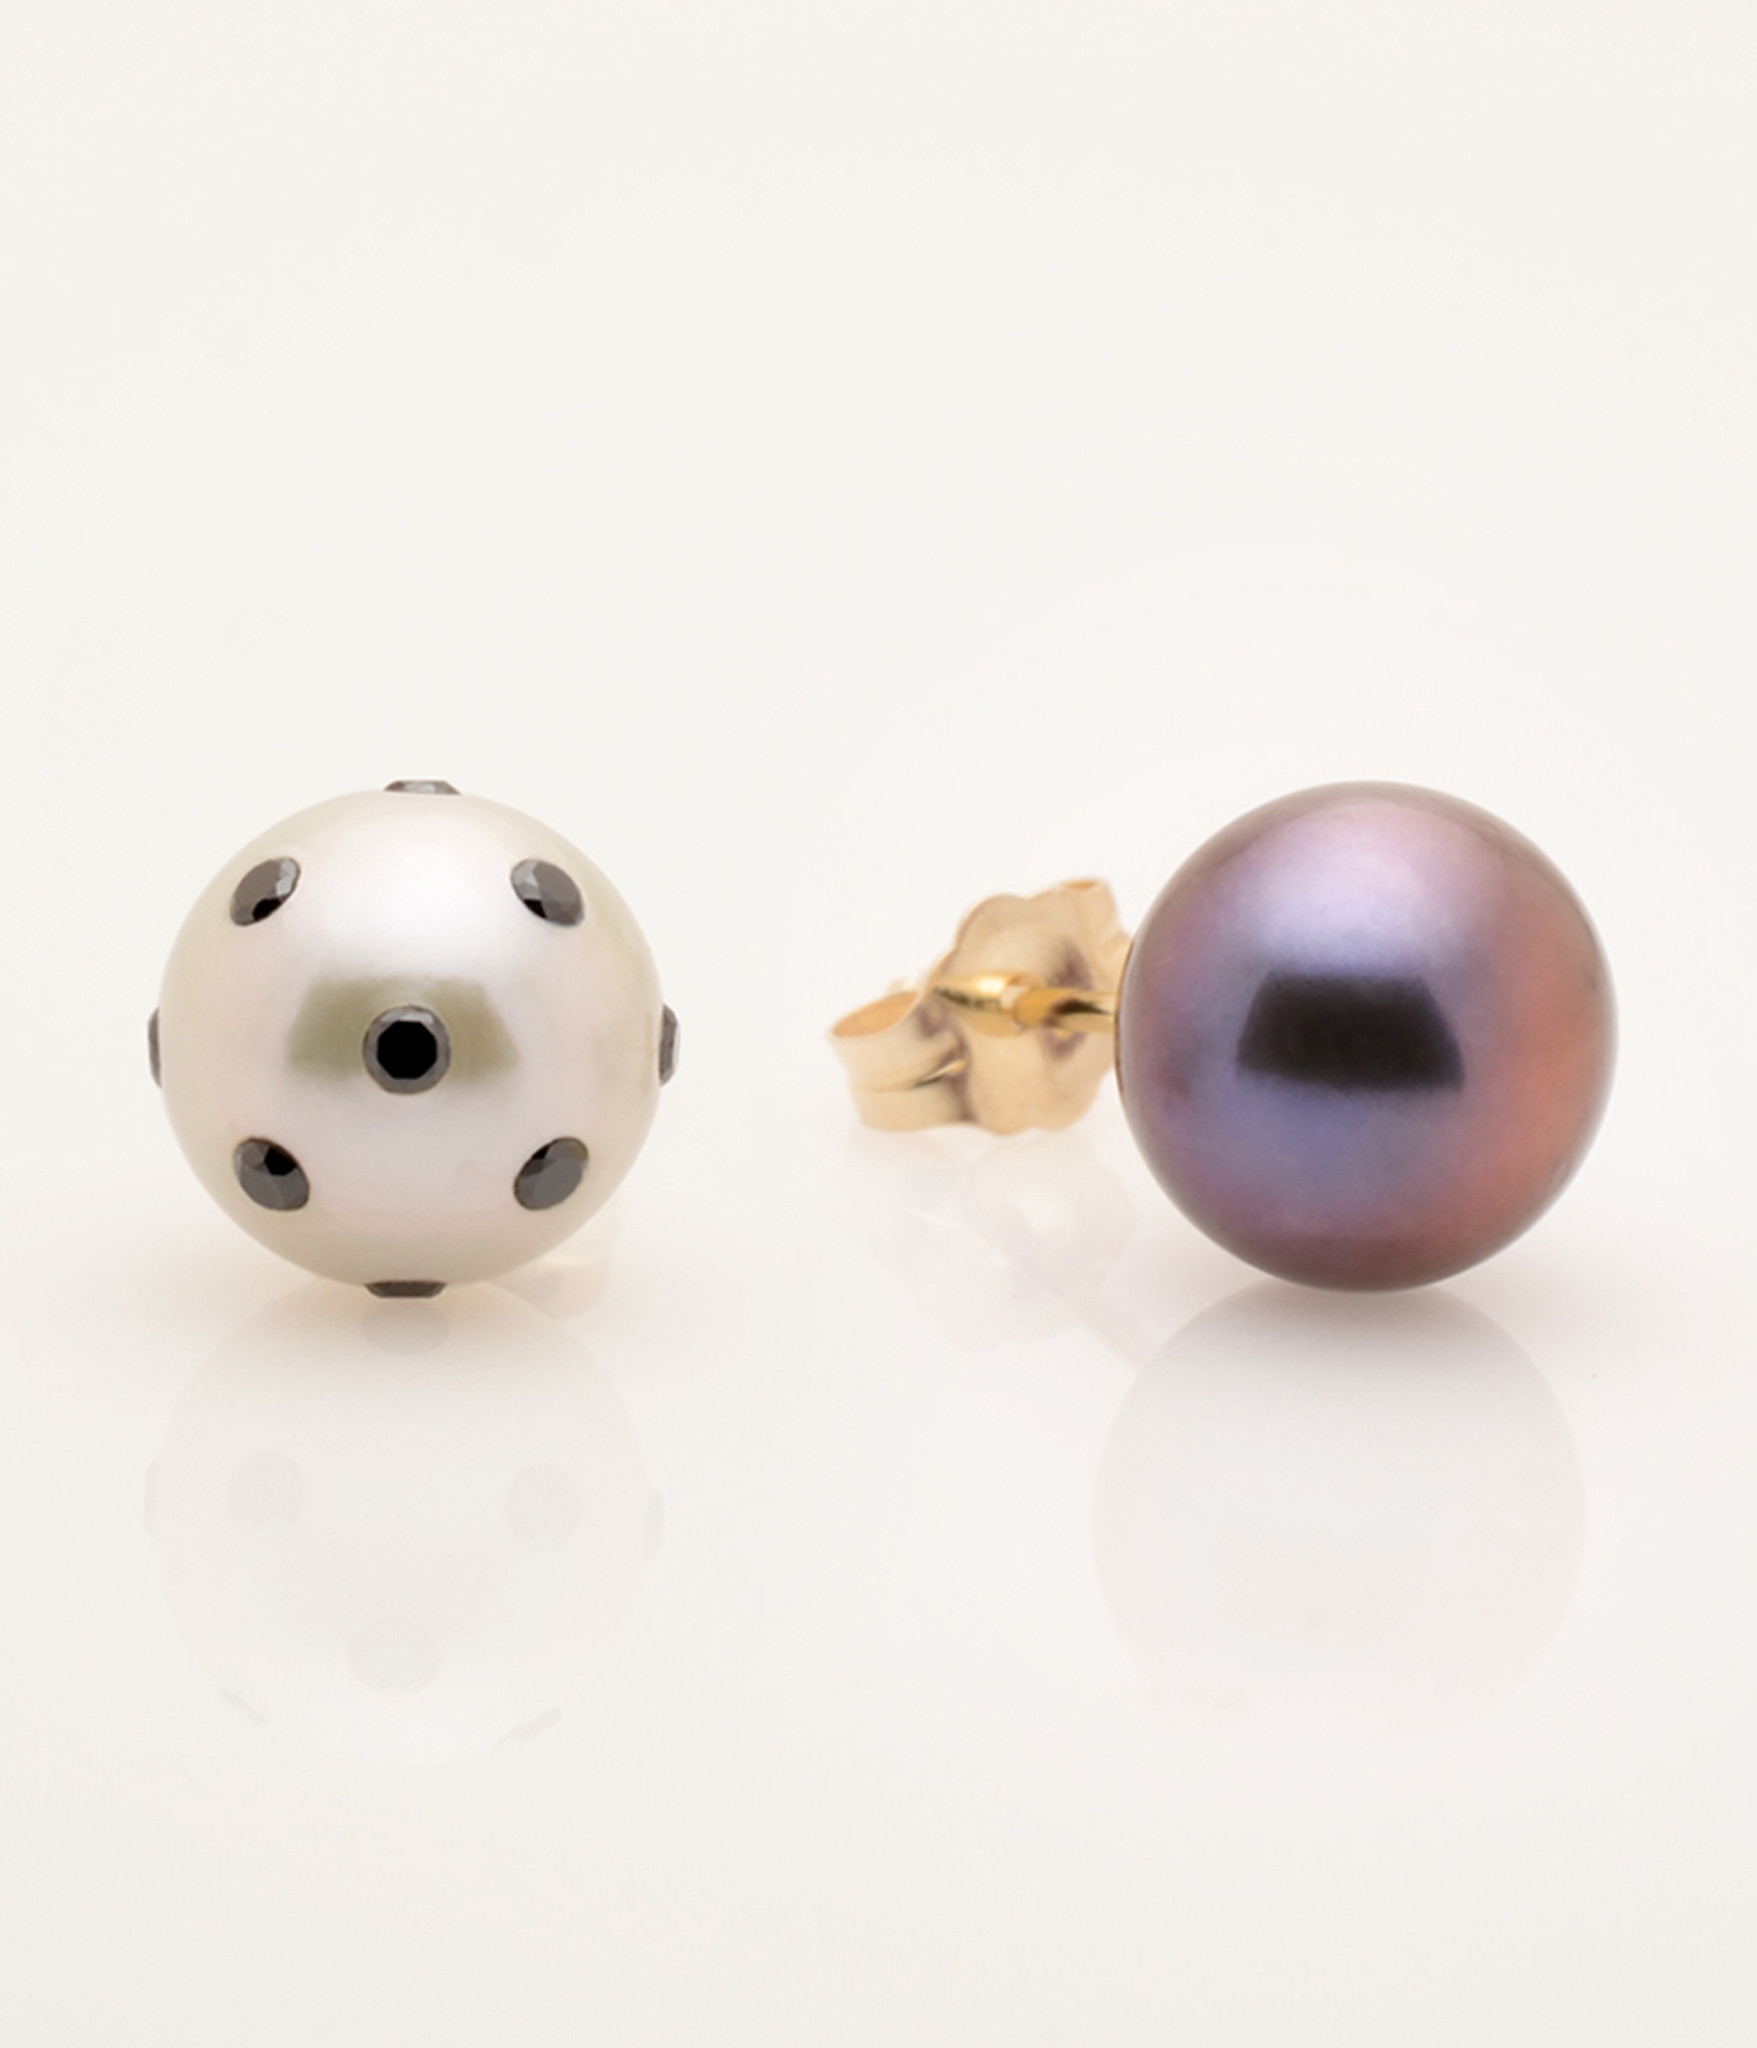 a2a2e48dd ... Gold Posts by View 2 of Cultured Freshwater White and Black Pearl  Earrings with LadyBug Diamond Pave and 14k ...